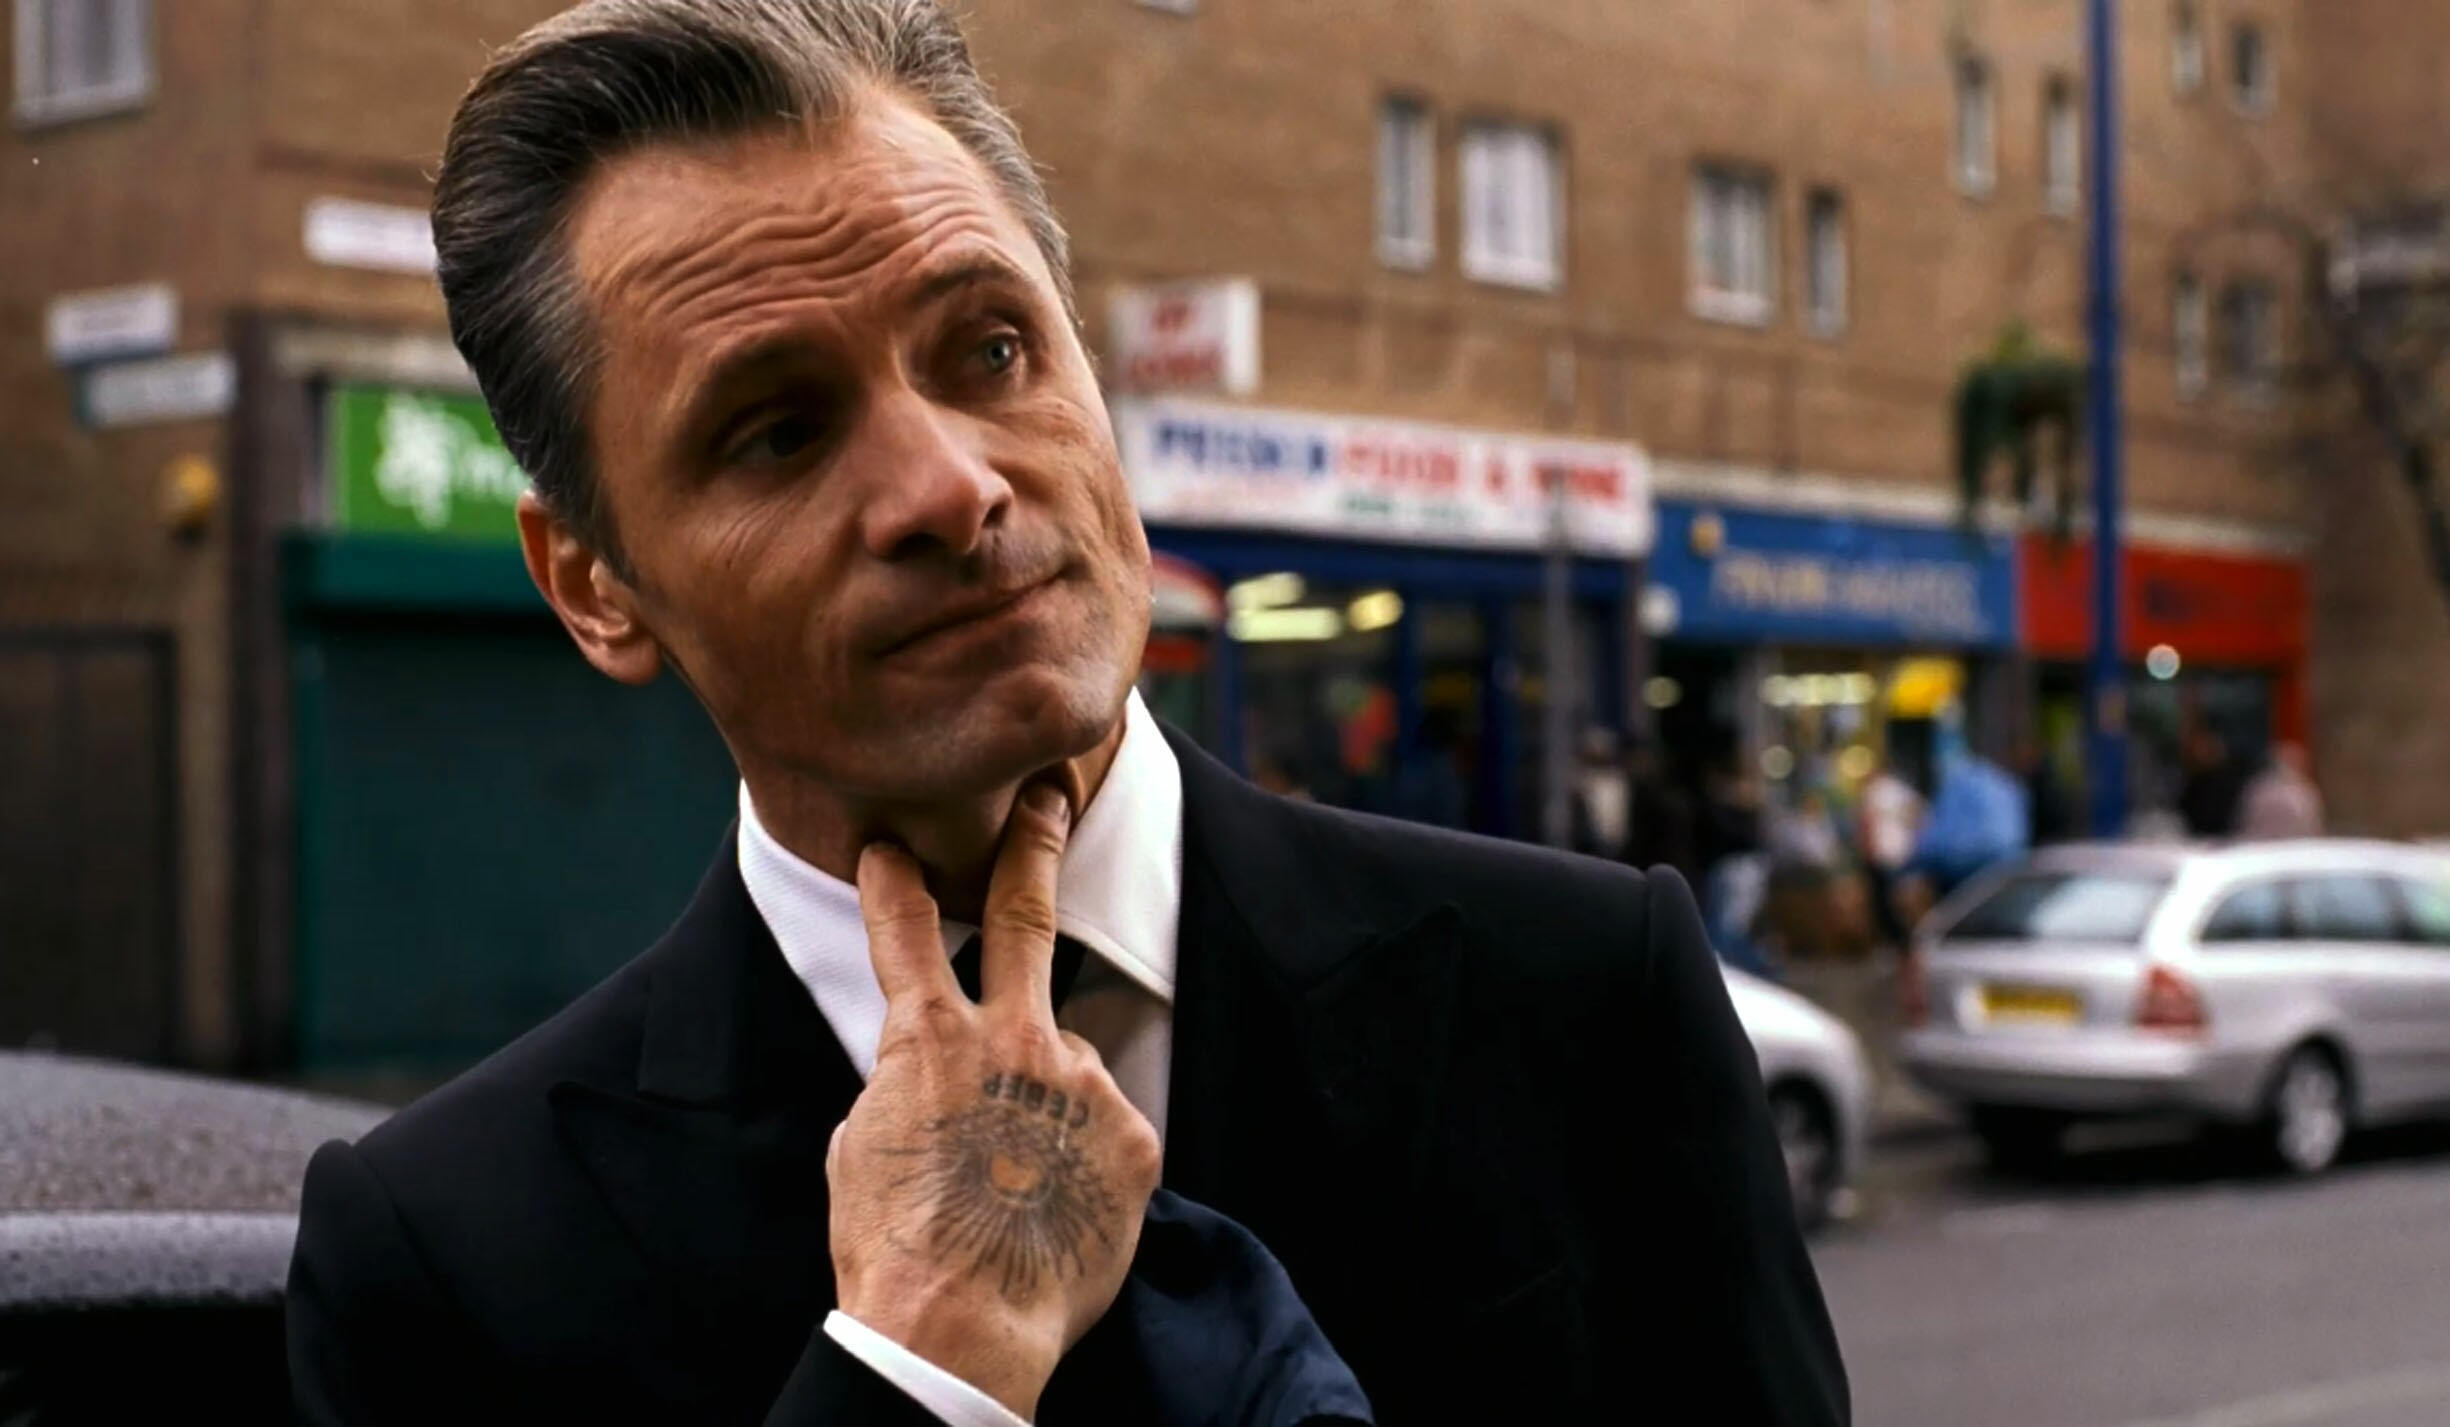 Here is Viggo Mortensen at his most menacing - covered in tattoos as a London mob boss. The actor plays the Eastern European leader of one of London's most notorious organized crime families in Eastern Promises. He soon butts heads with Anna, played by Naomi Watts, an innocent midwife who accidentally uncovers potential evidence against the crime family. The movie, reuniting Viggo with director David Cronenberg, also stars Vincent Cassel. Pictured: Viggo Mortensen Ref: SPL1134 Splash News and Pictures Los Angeles: 310-821-2666 New York: 212-619-2666 London: 870-934-2666 photodesk@splashnews.com Splash News and Picture Agency does not claim any Copyright or License in the attached material. Any downloading fees charged by Splash are for Splash's services only, and do not, nor are they intended to, convey to the user any Copyright or License in the material. By publishing this material , the user expressly agrees to indemnify and to hold Splash harmless from any claims, demands, or causes of action arising out of or connected in any way with user's publication of the material.